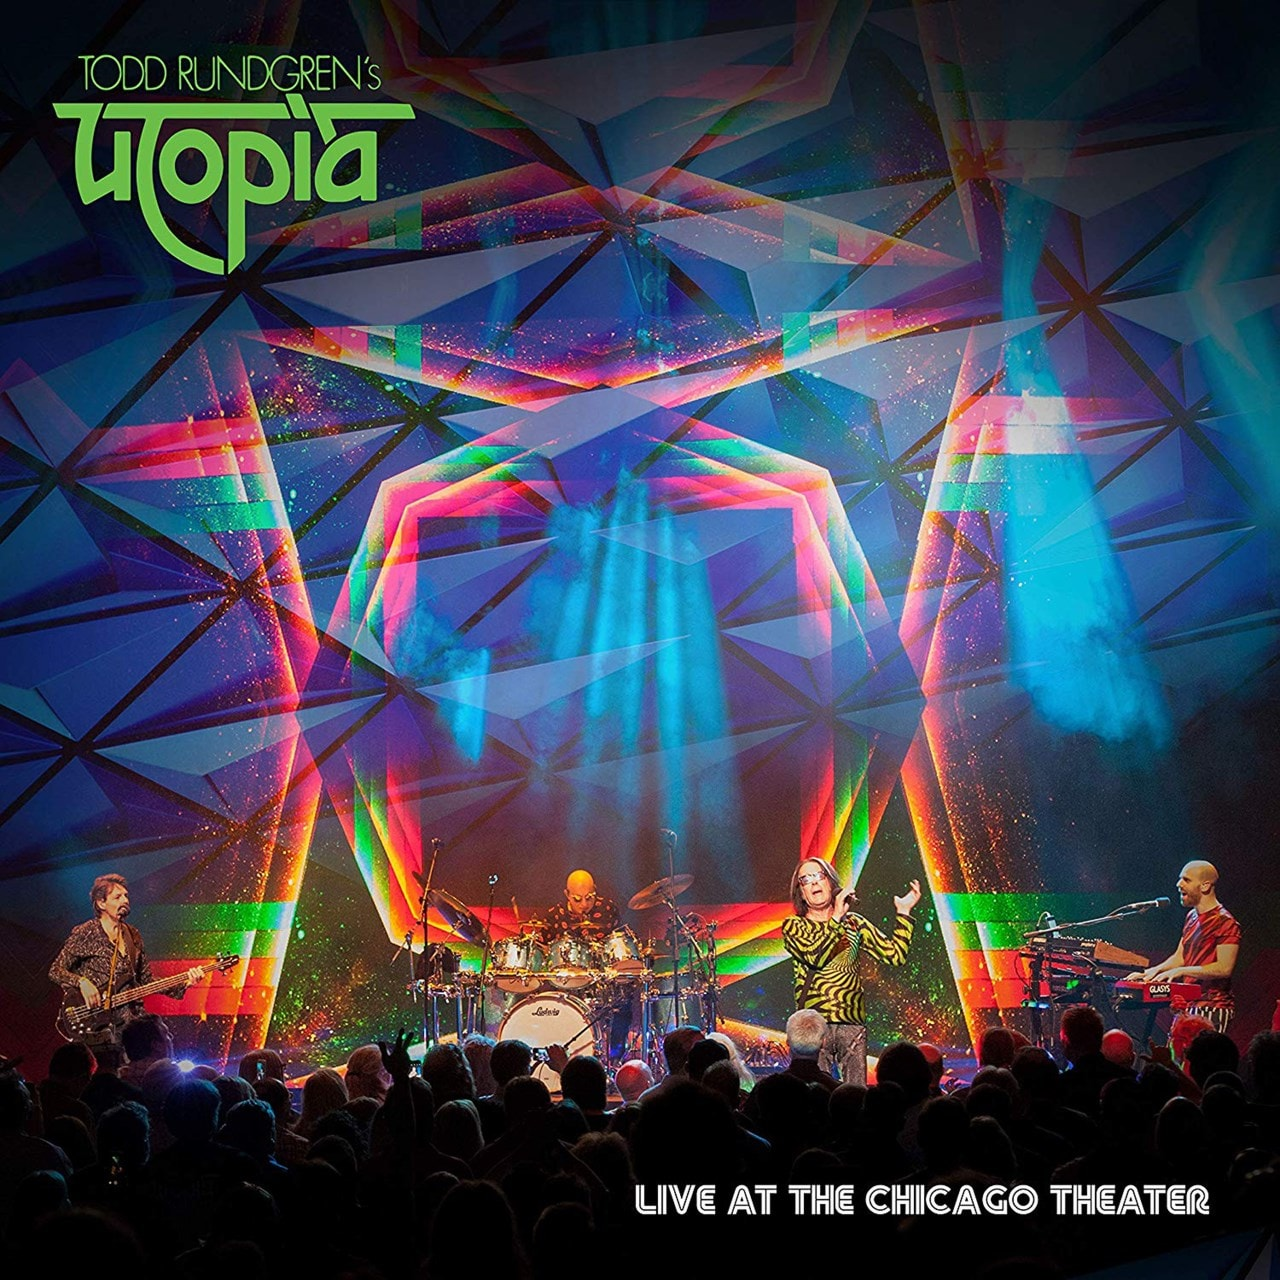 Live at the Chicago Theater - 1